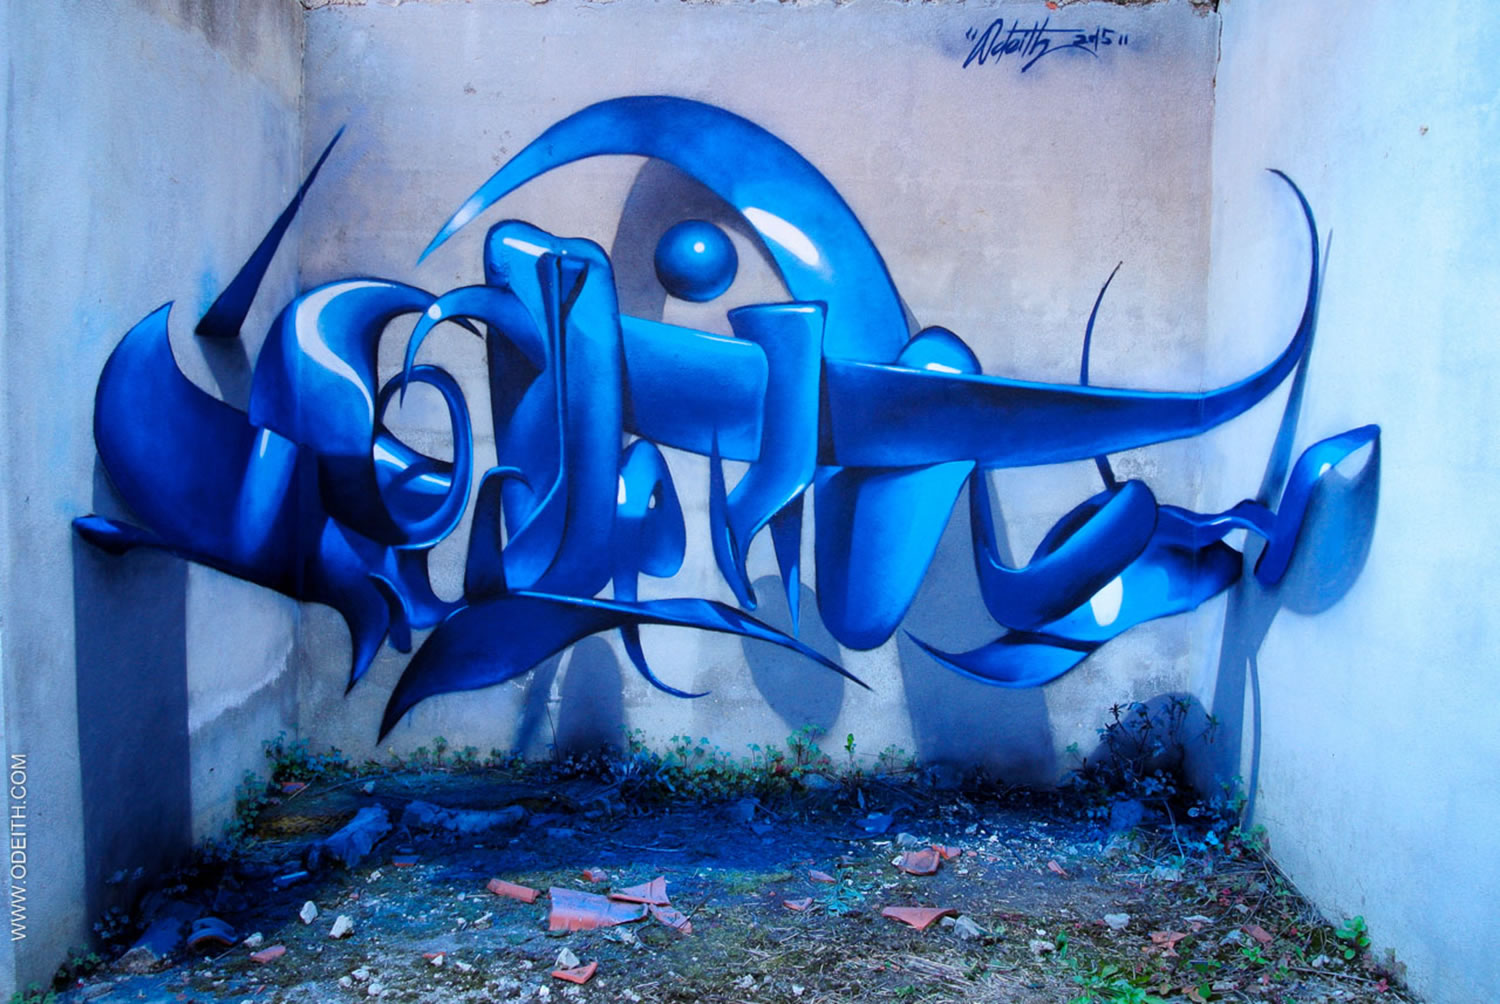 odeith letters in blue, 3d graffiti